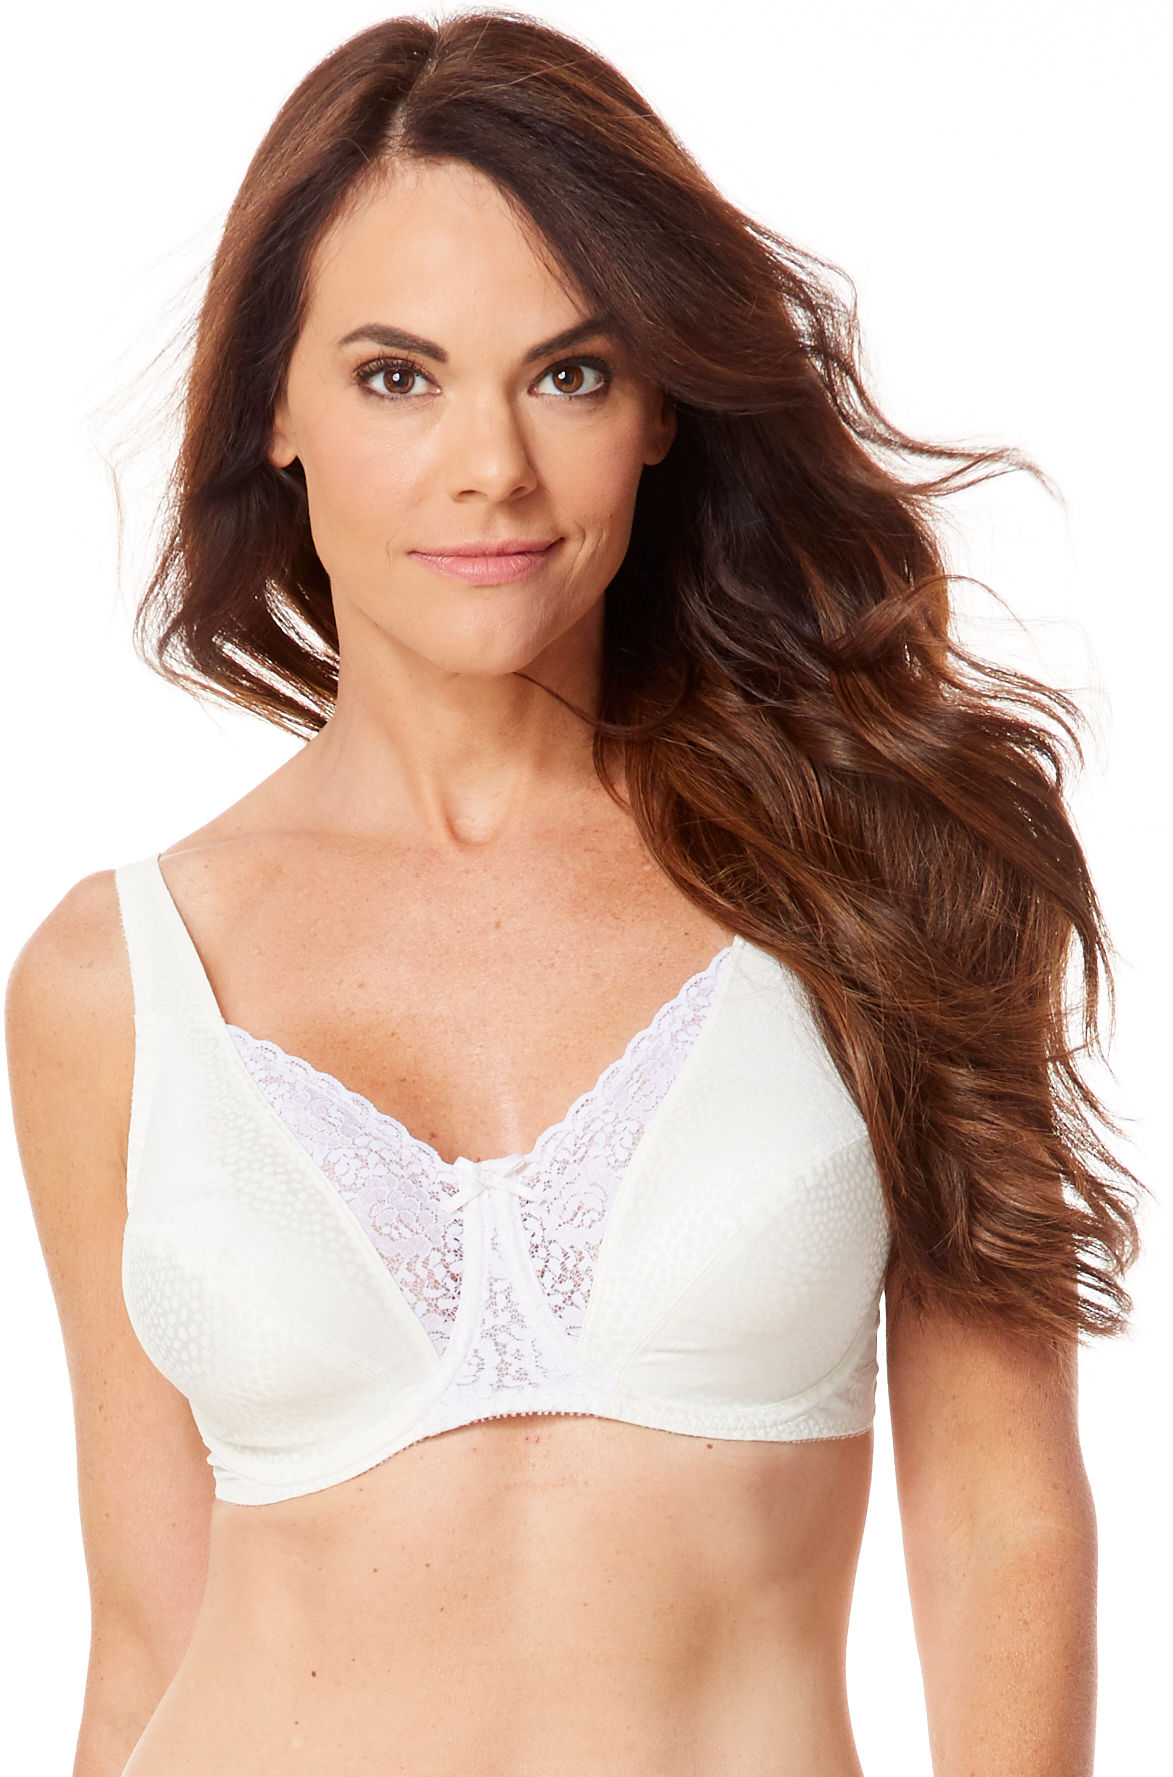 Playtex secrets signature floral underwire 4422 ebay for 4 4422 c